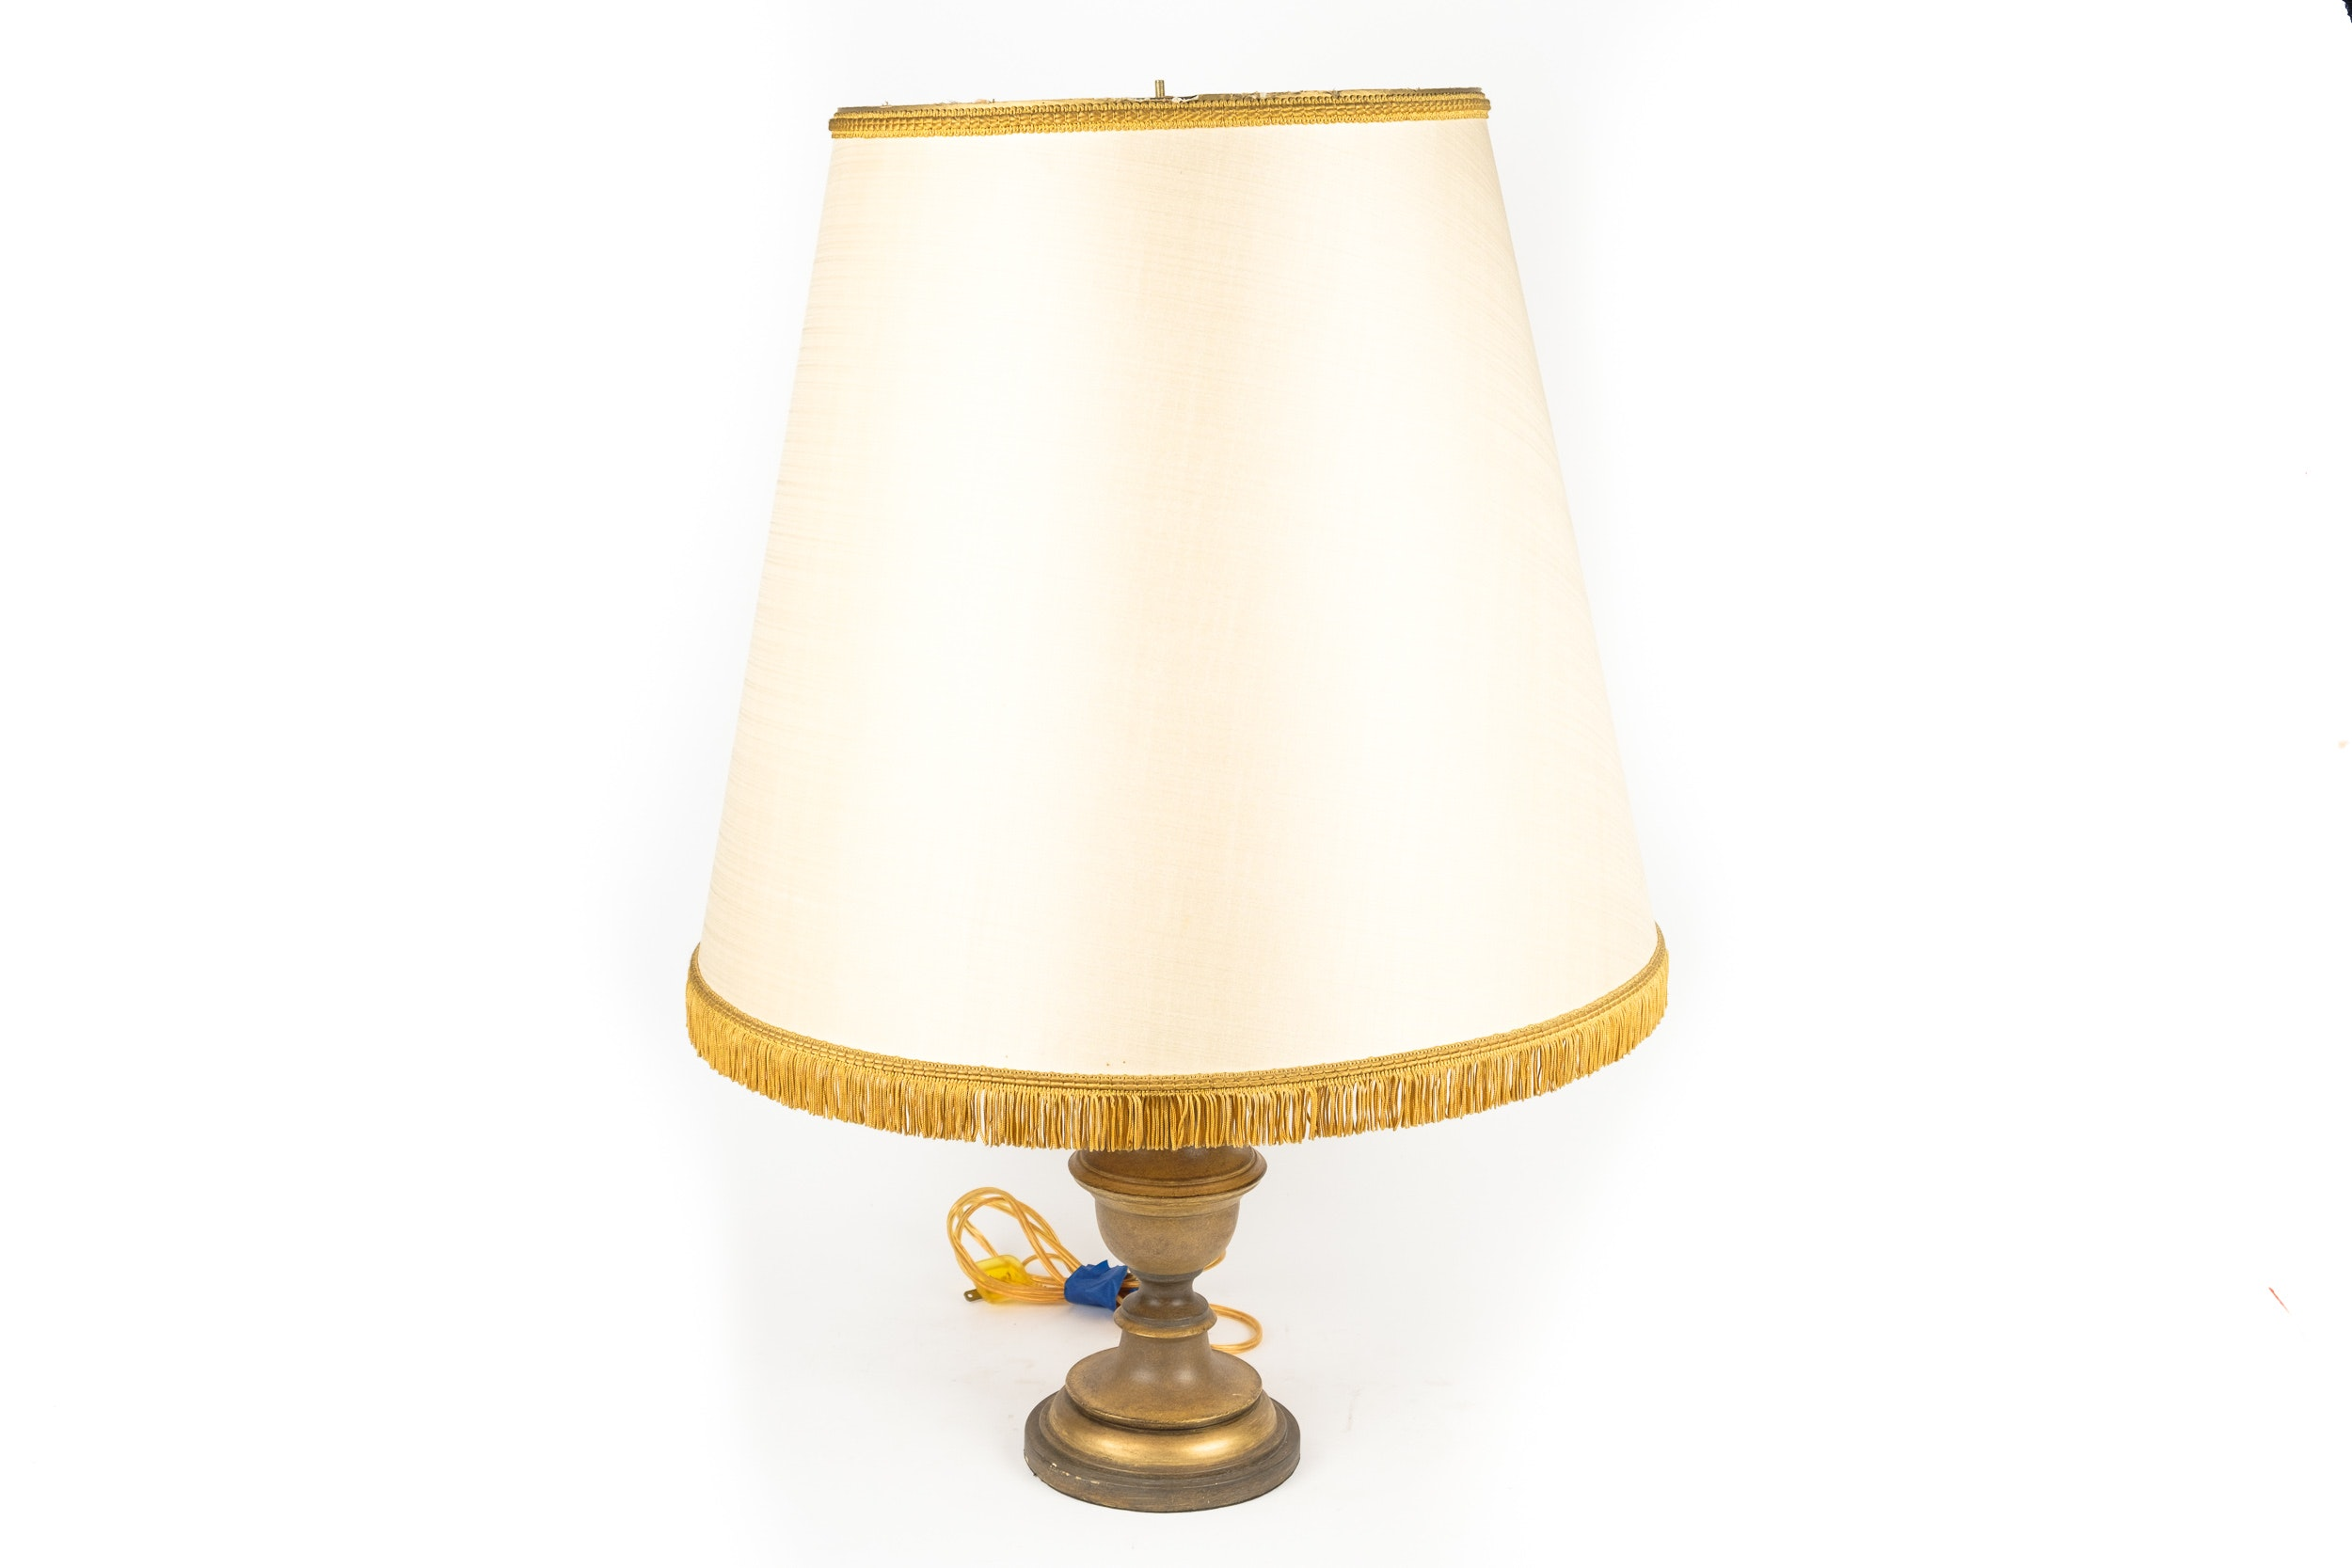 Vintage Table Lamp with Shade